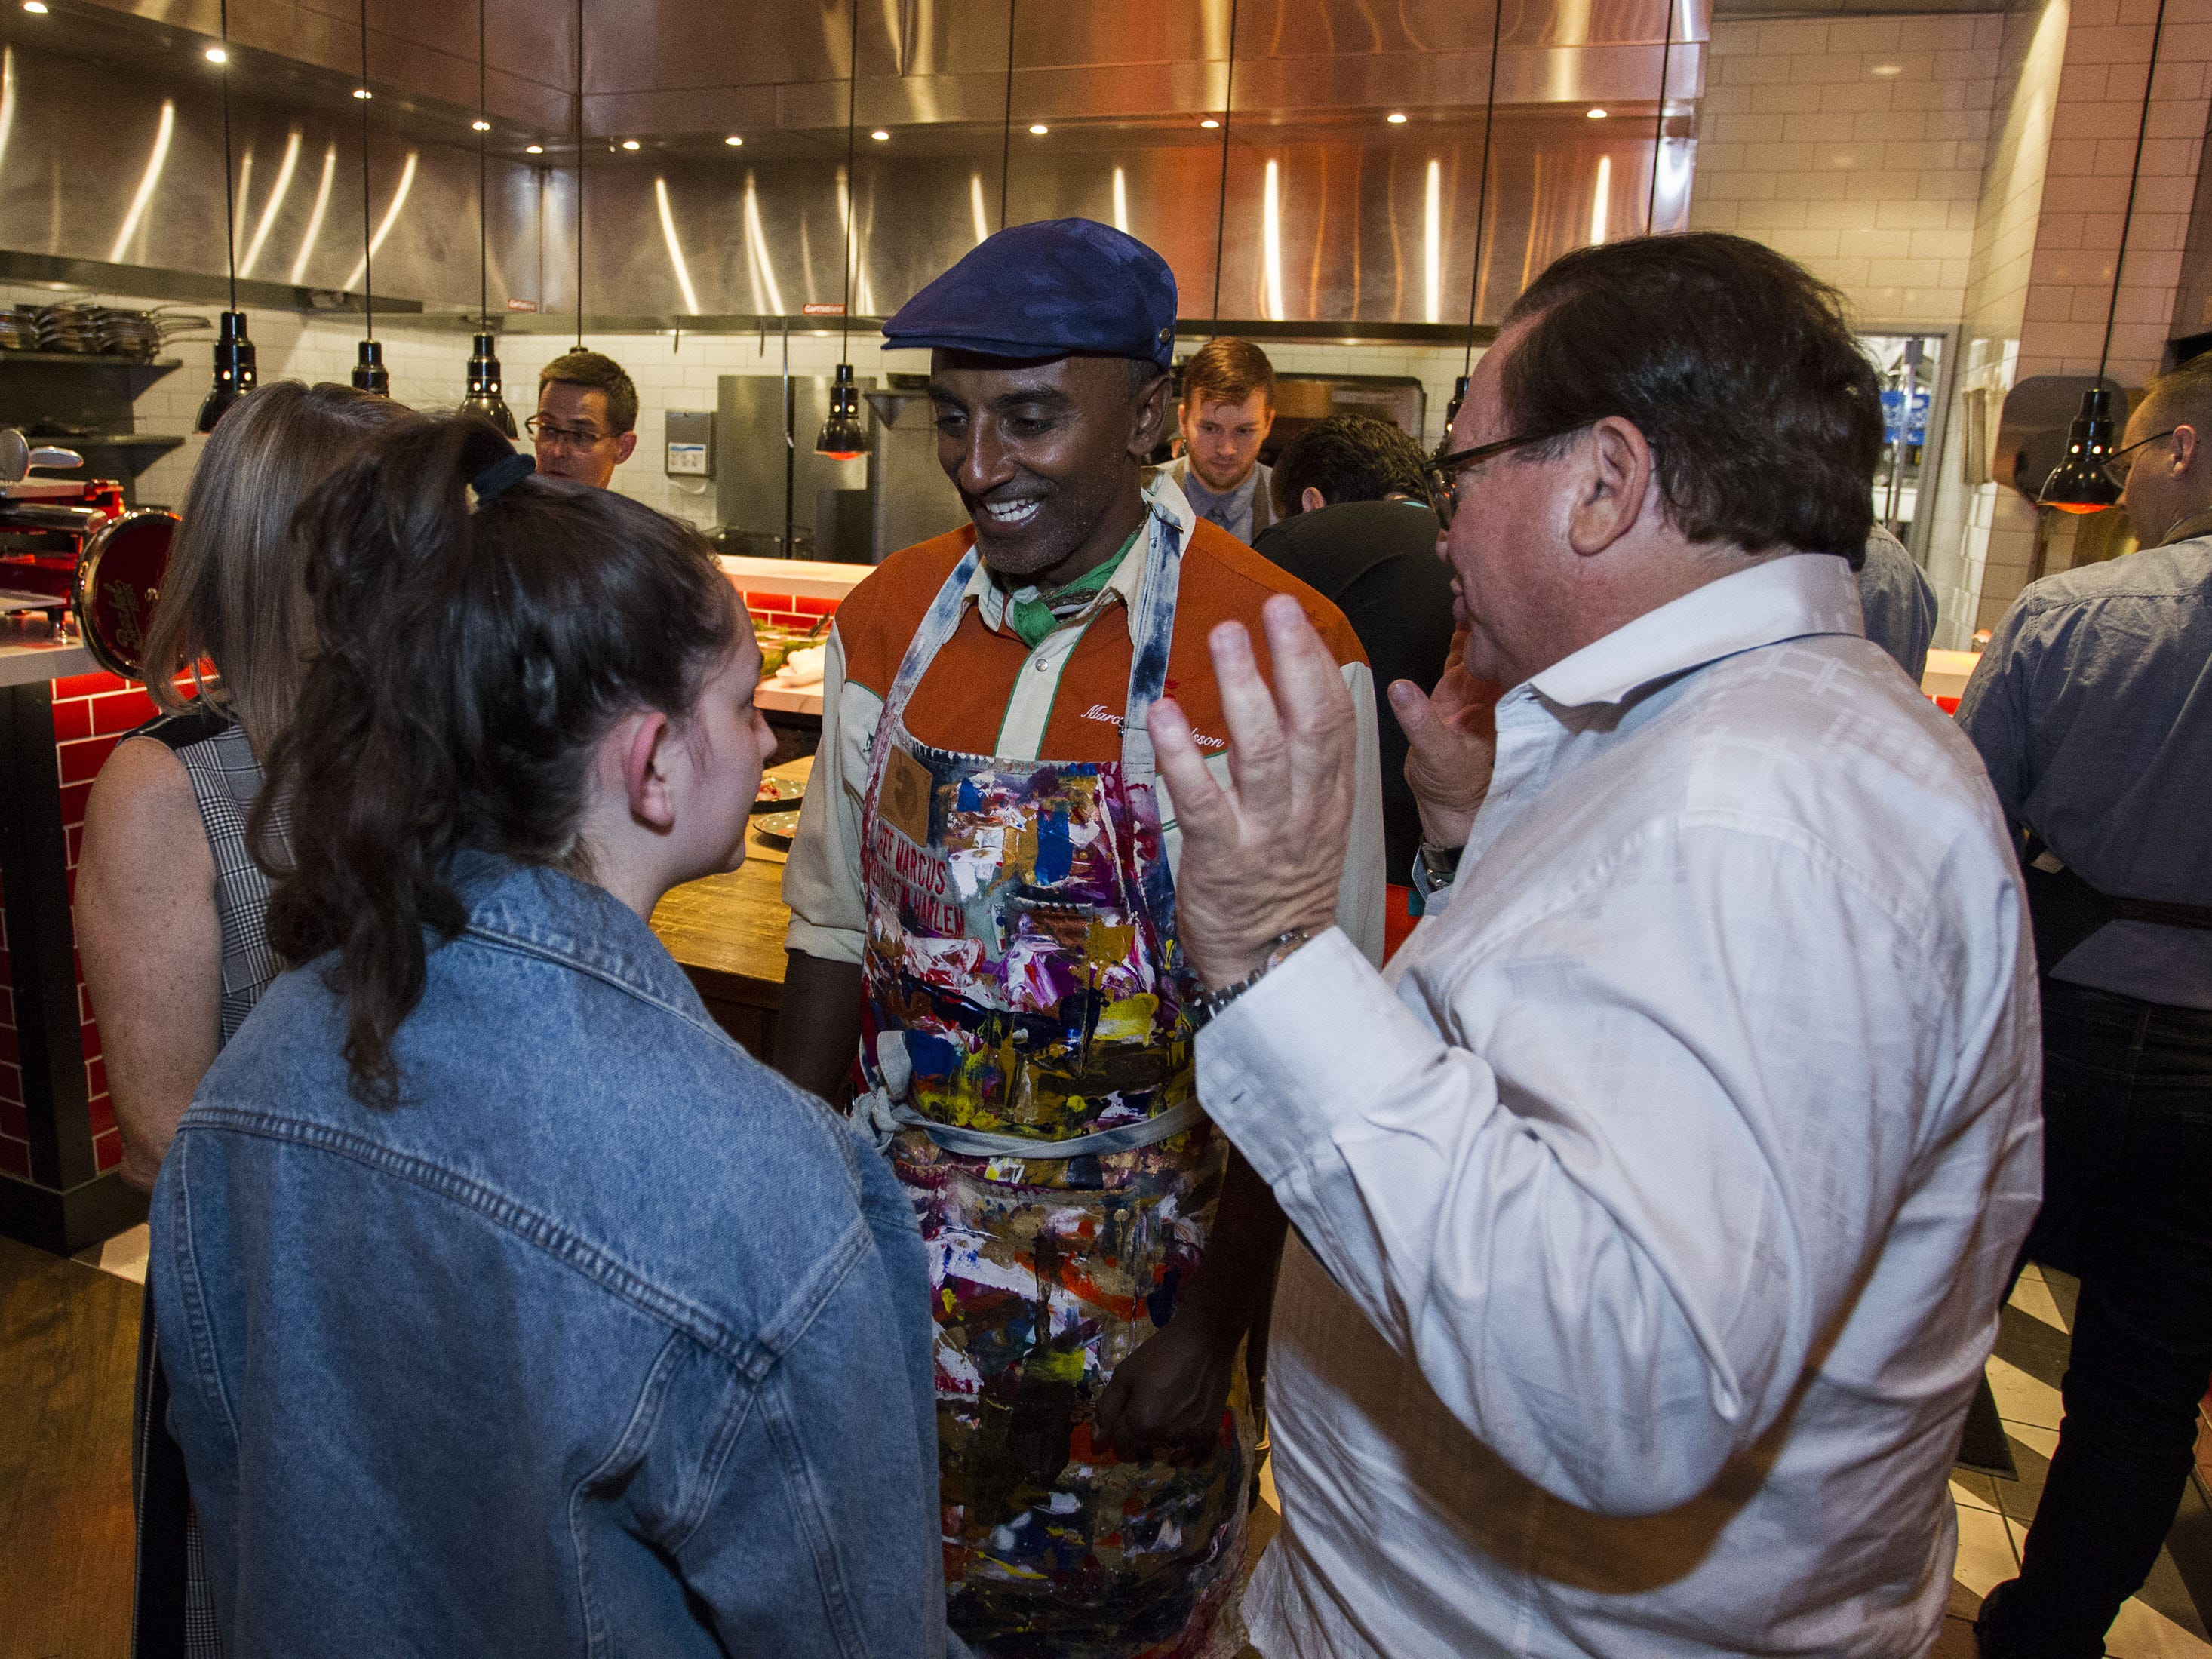 Chef Marcus Samuelsson greets guests during the exclusive kickoff dining event at Mora Italian for azcentral Wine & Food Experience.